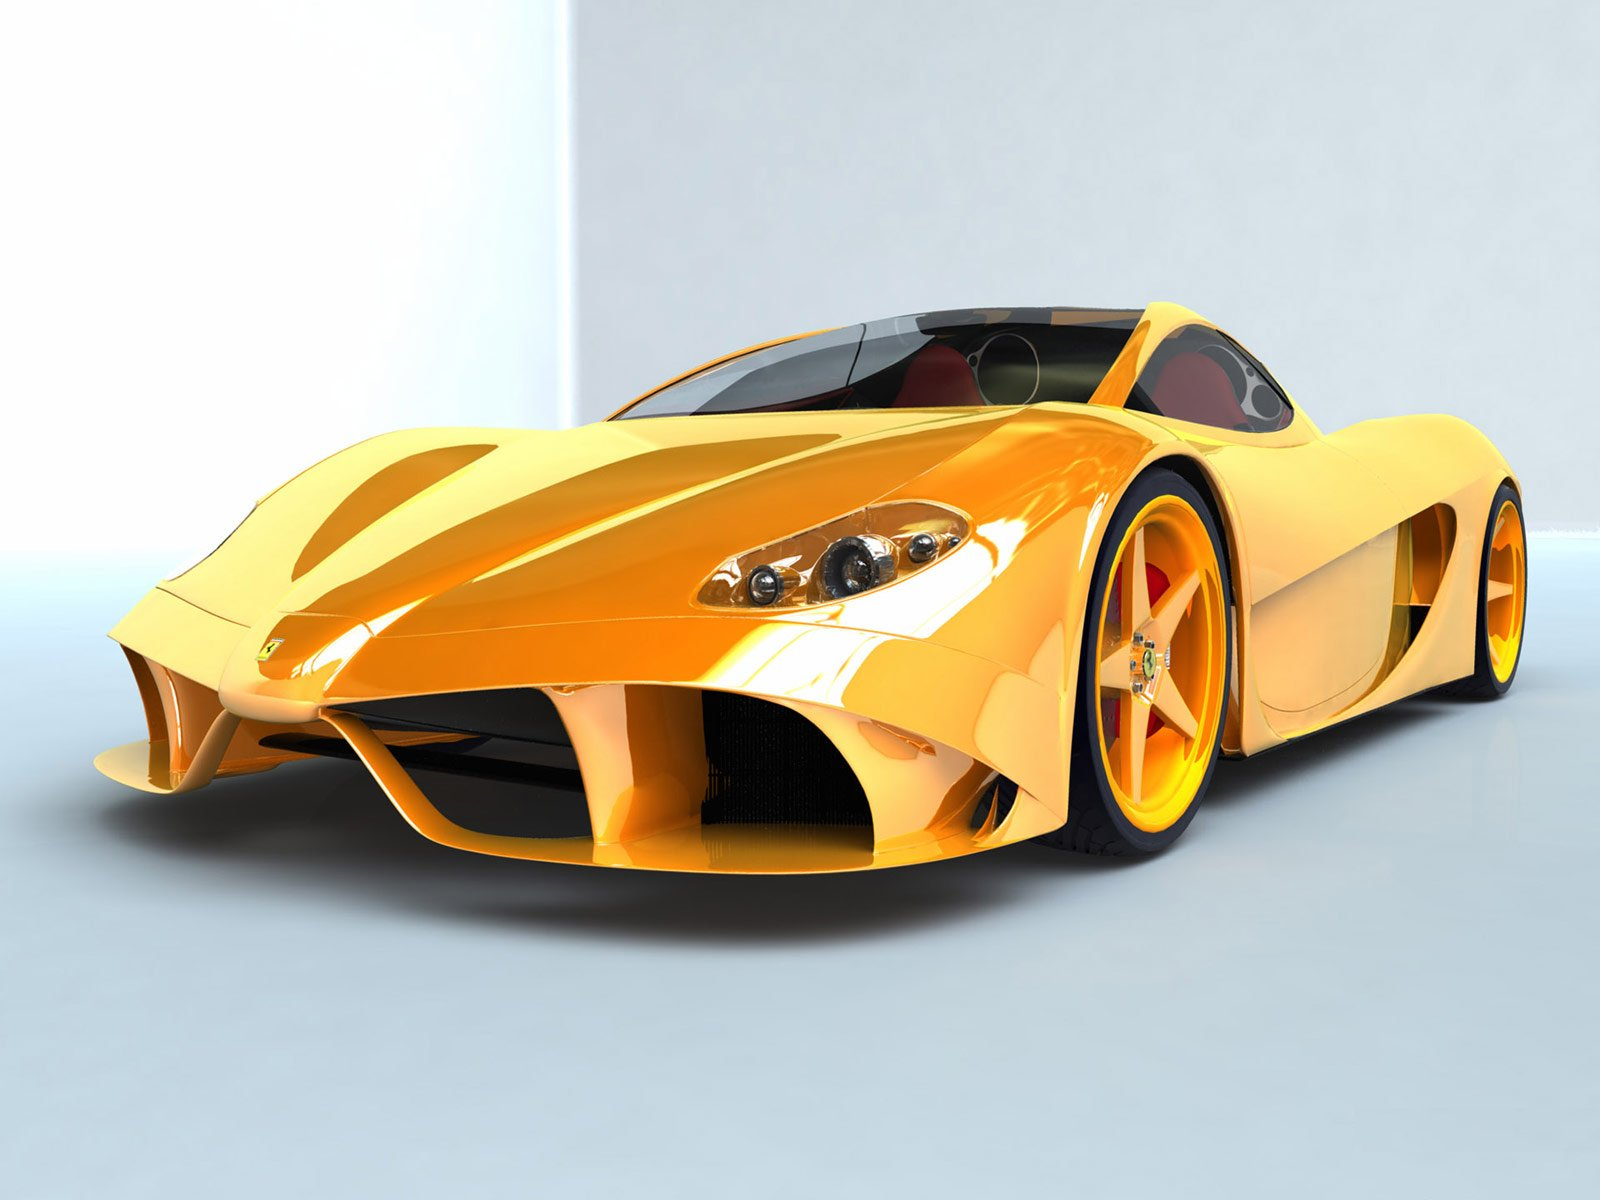 Cars Backgrounds - Exotic Cars Wallpapers - Modification Car | Car ...